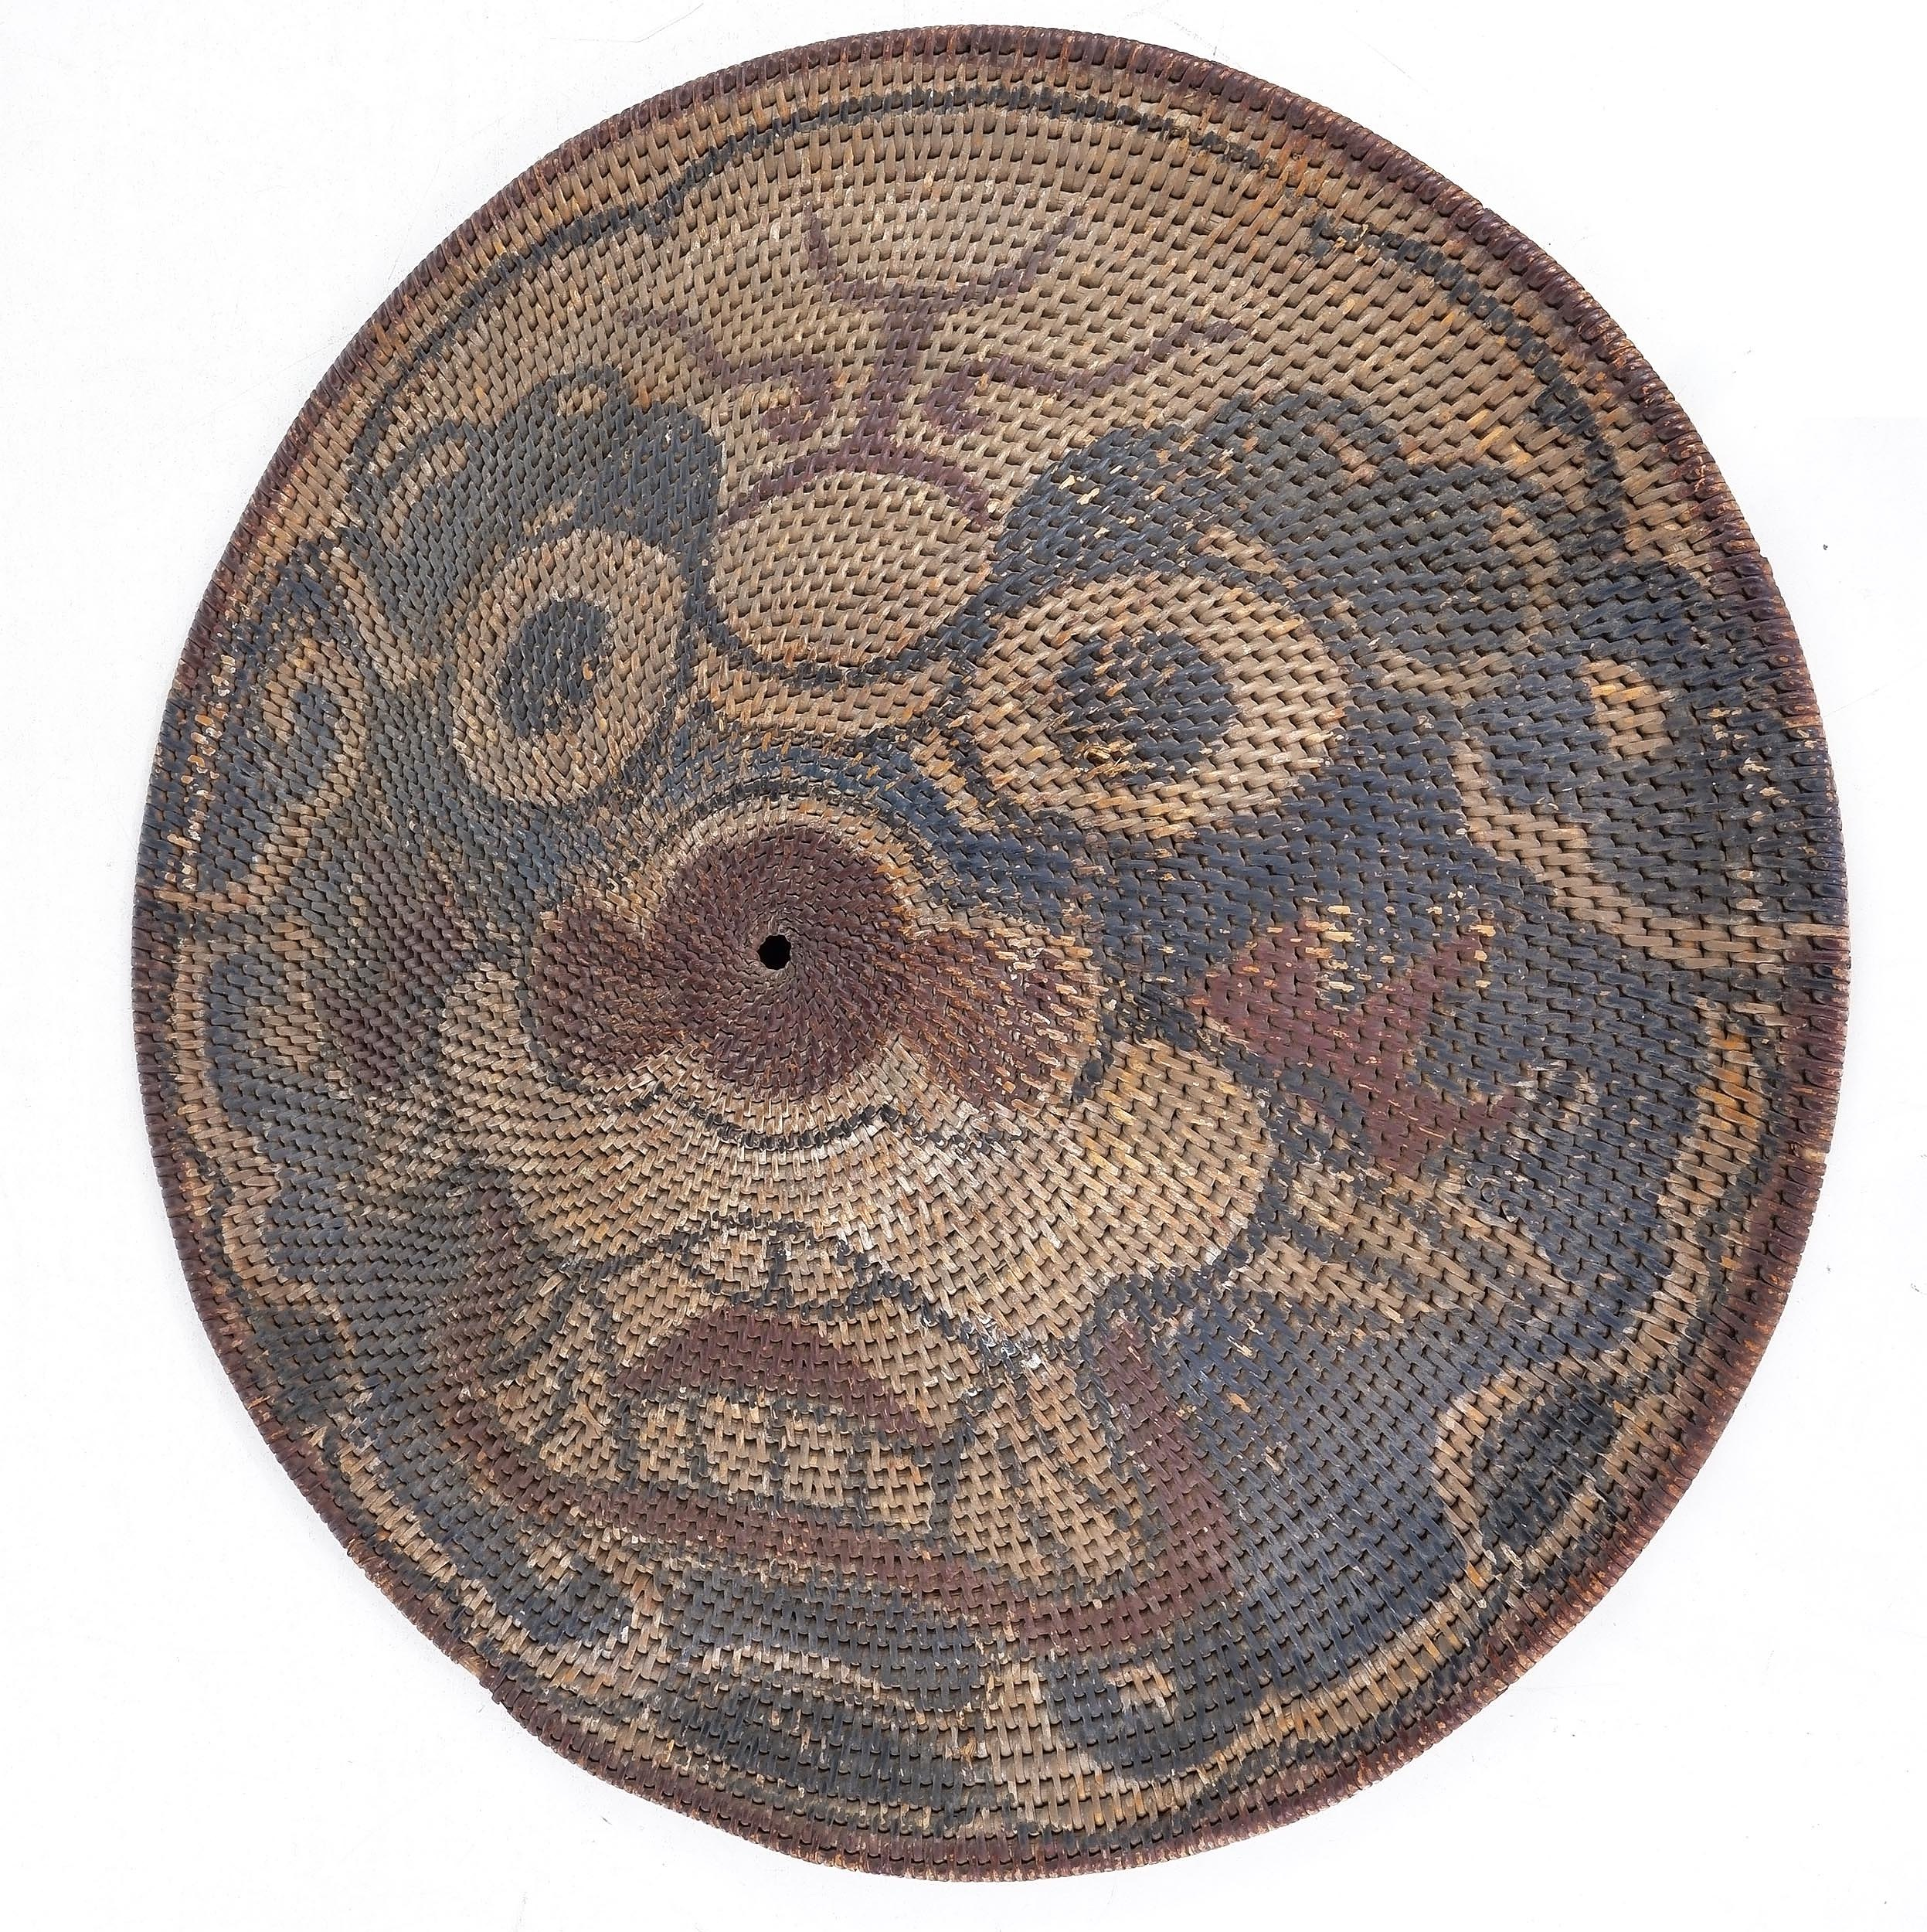 'Chinese Qing Dynasty Rattan Shield (Tengpai) Painted with a Visage of a Tiger, Late 18th/Early 19th Century'